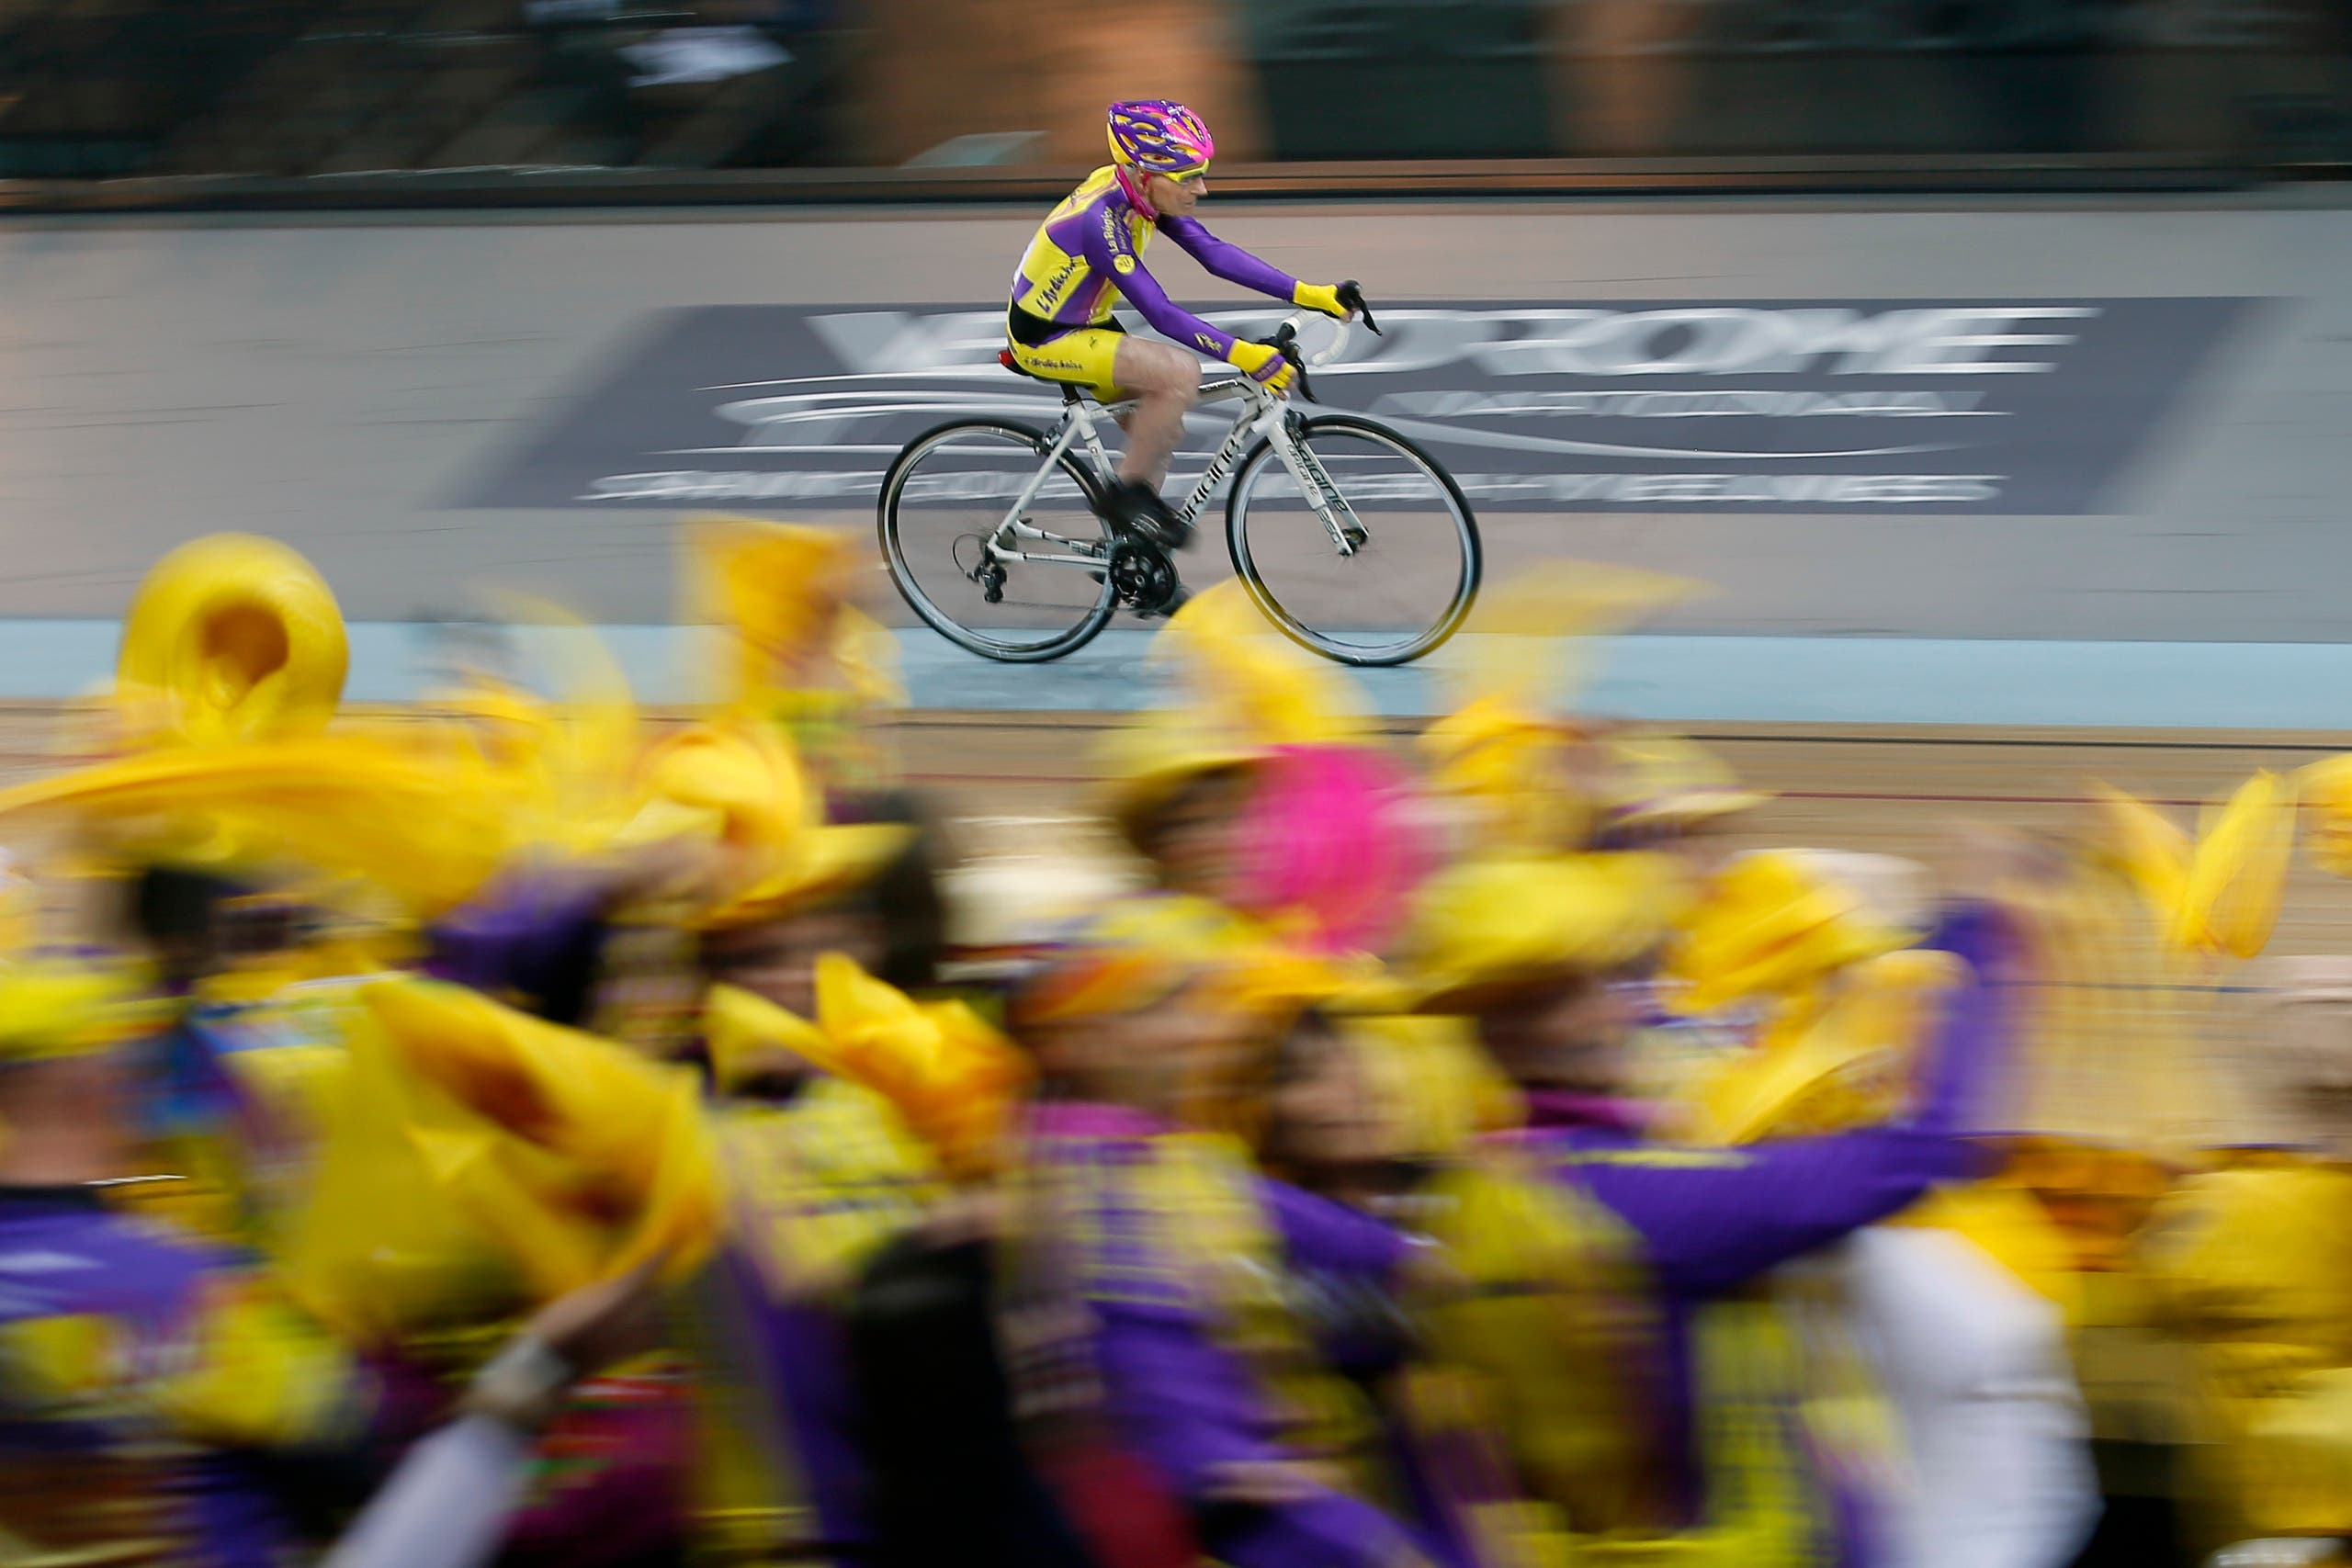 French cyclist Robert Marchand, aged 105, cycles in a bid to beat his record for distance cycled in one hour, at the velodrome of Saint-Quentin en Yvelines, outside Paris, Wednesday, Jan. 4, 2017. (AP)